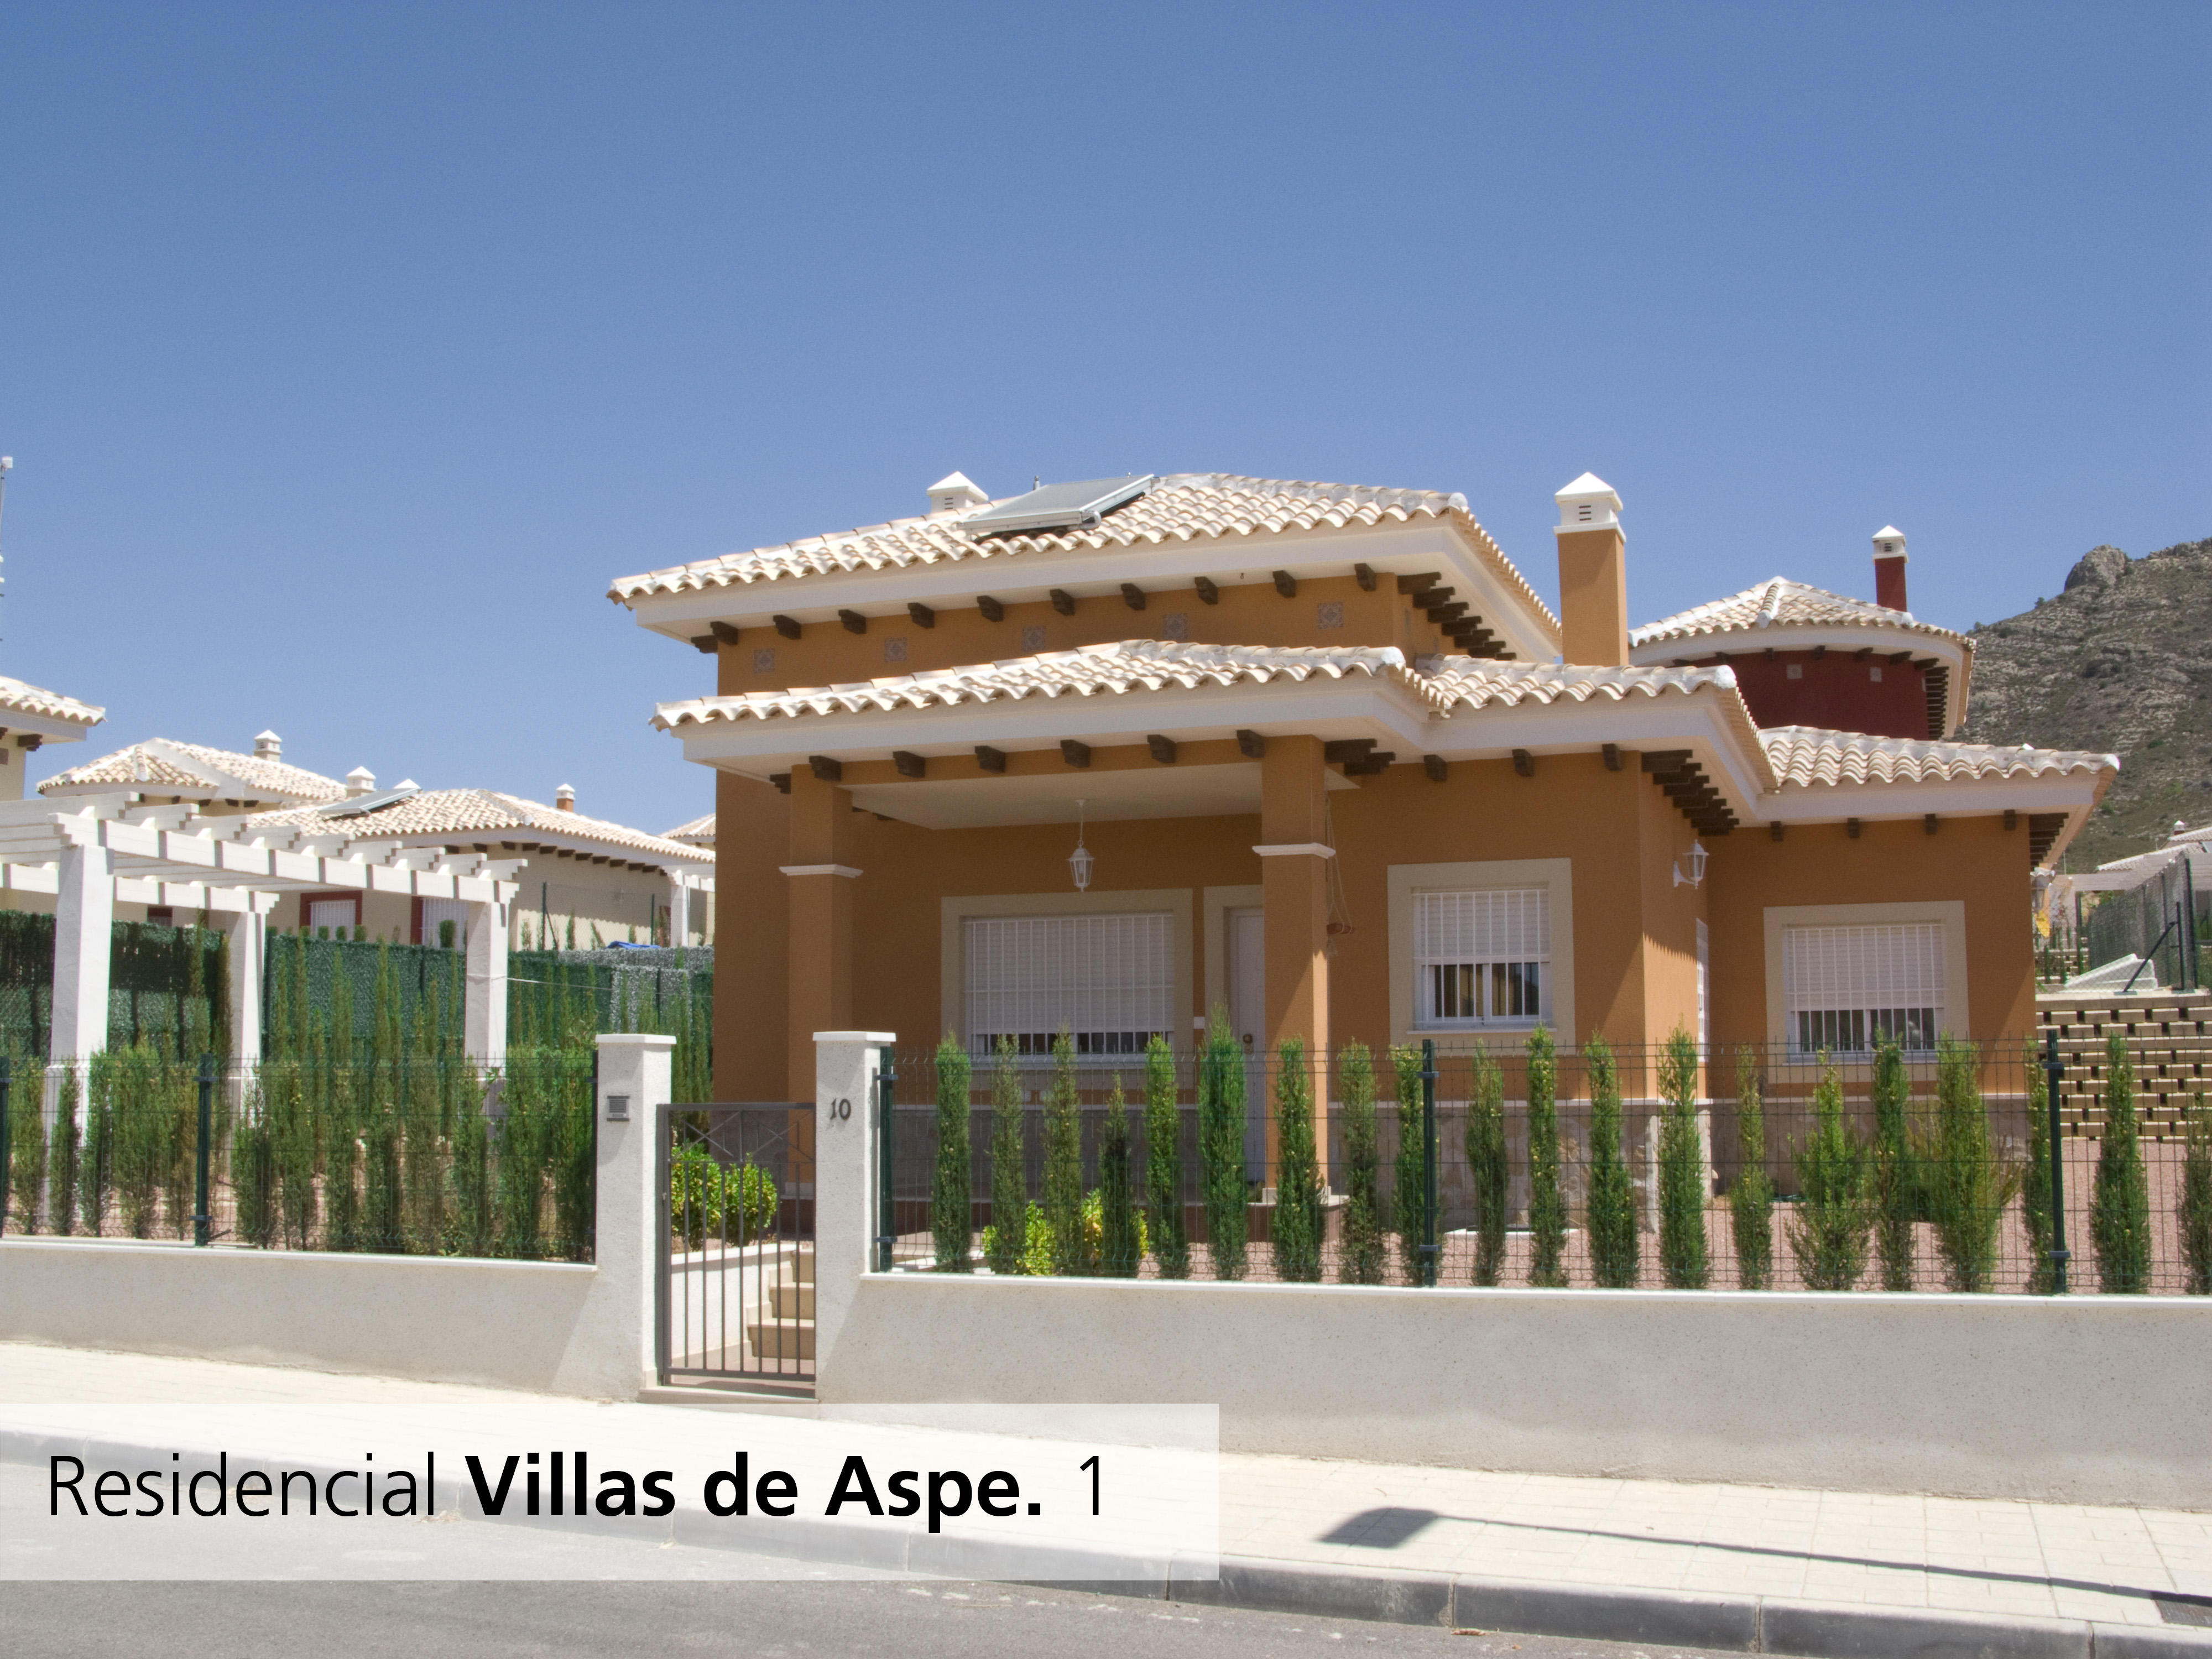 Costa Realty - 03680.1